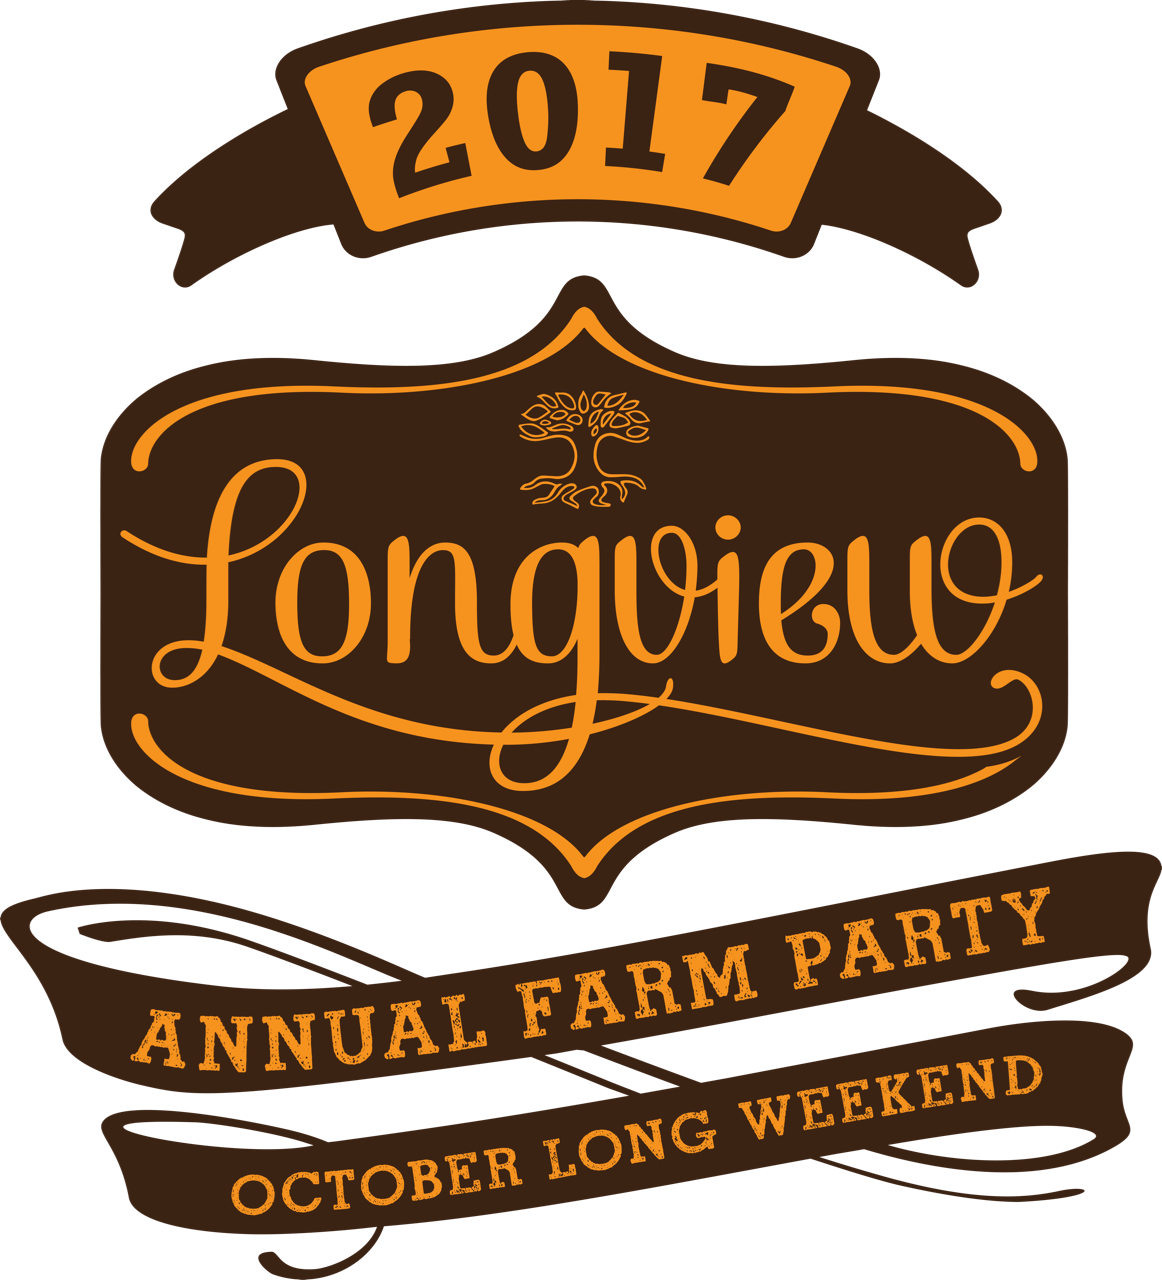 Tickets for Longview Farm Party 2017 in Caffreys Flat from Ticketbooth